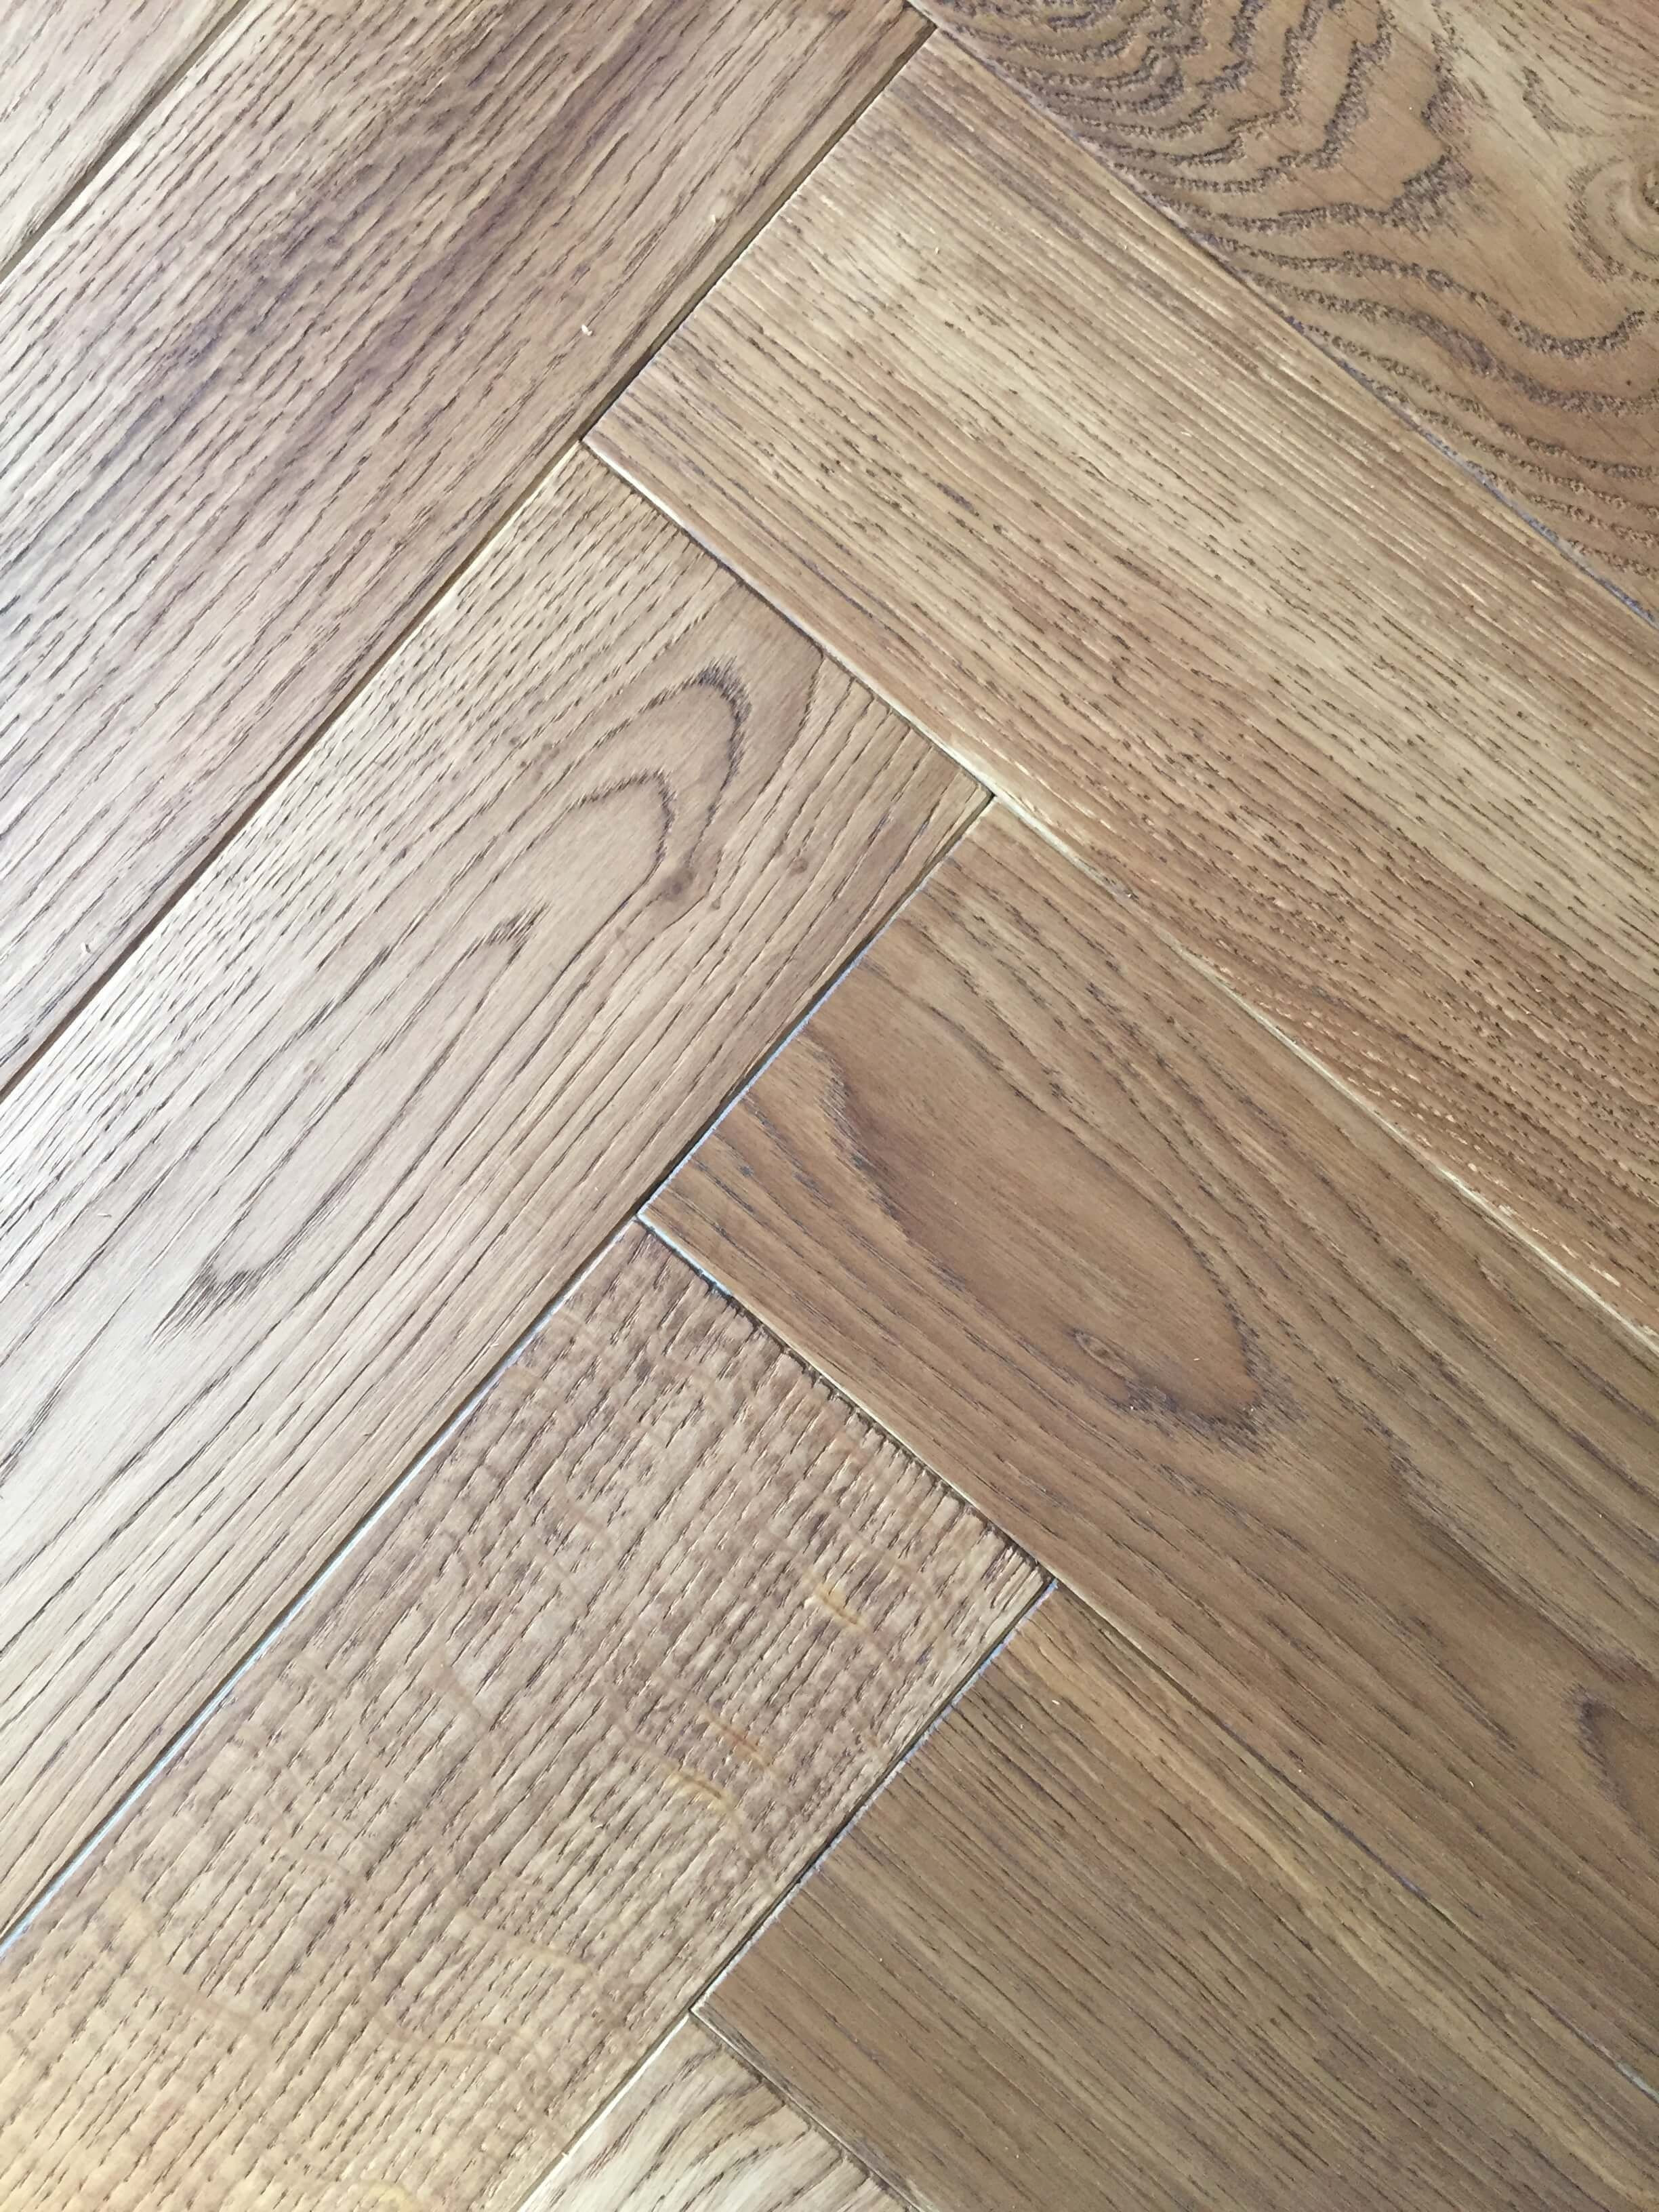 hand scraped engineered hardwood flooring pros and cons of handscraped engineered hardwood awesome engineered wood flooring pertaining to handscraped engineered hardwood awesome engineered wood flooring brown maple hand scraped engineered images